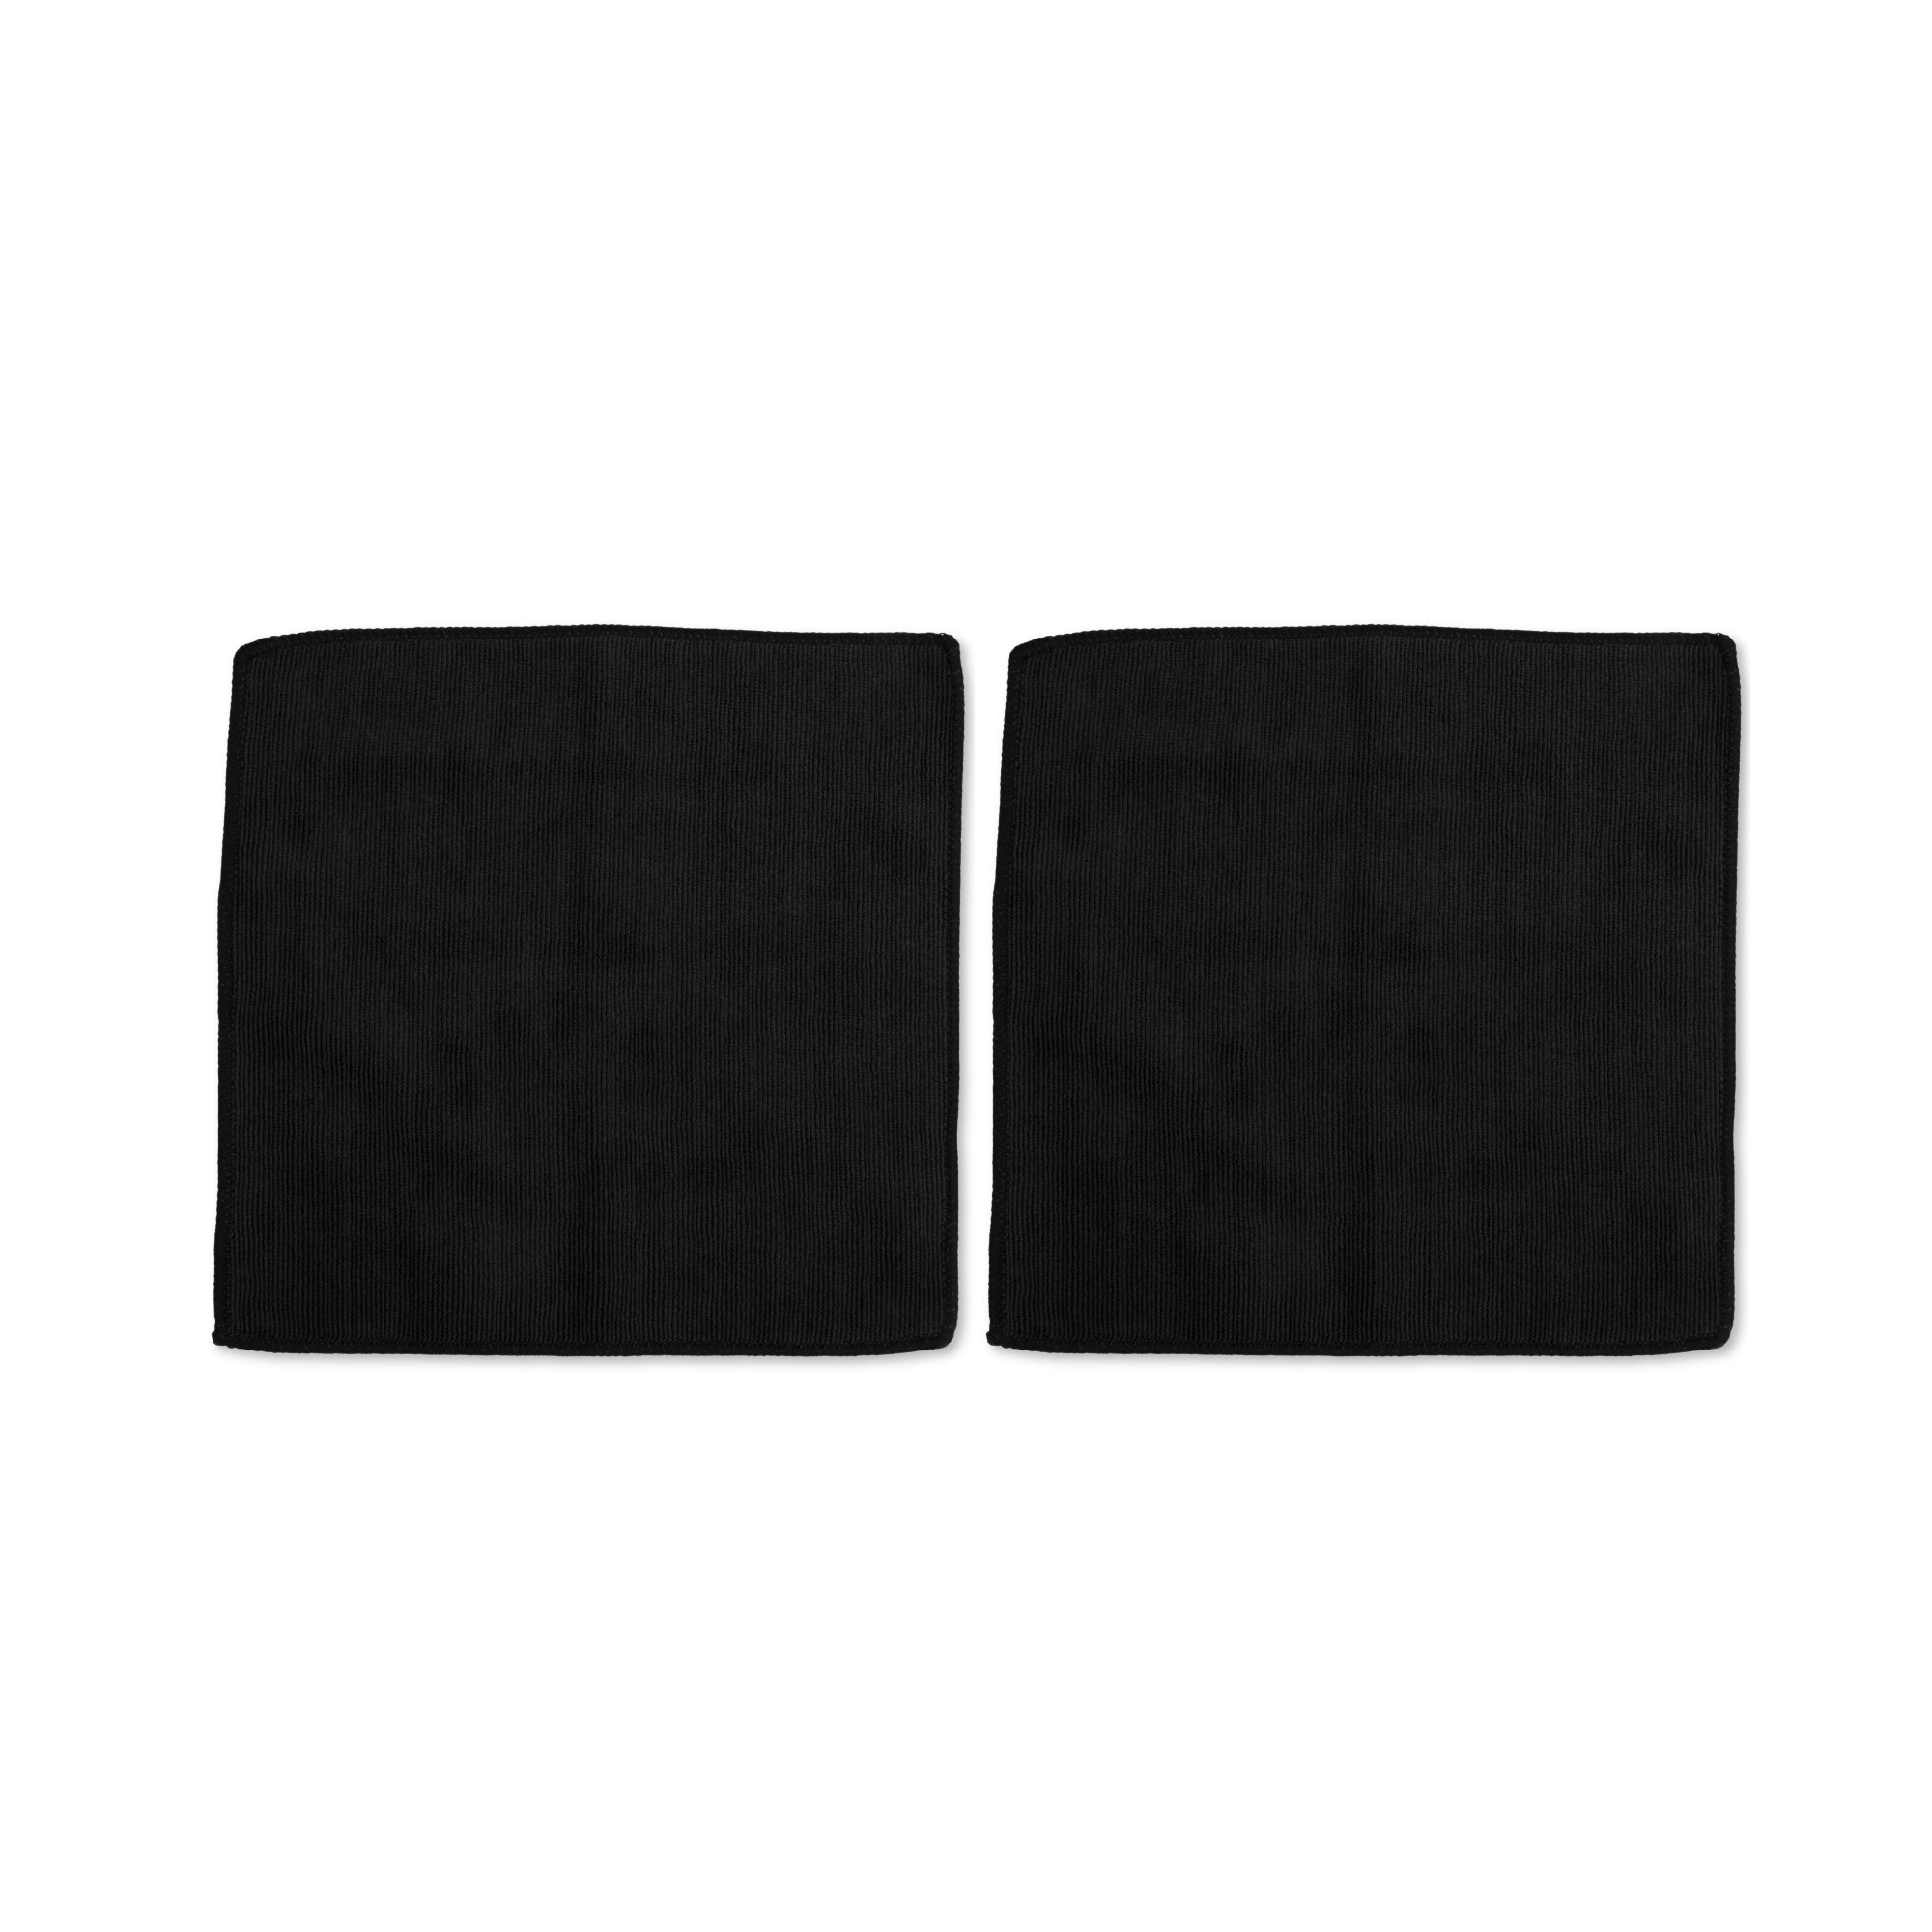 EspressoWorks 100% Microfibre Cleaning Cloths (2 Pack)